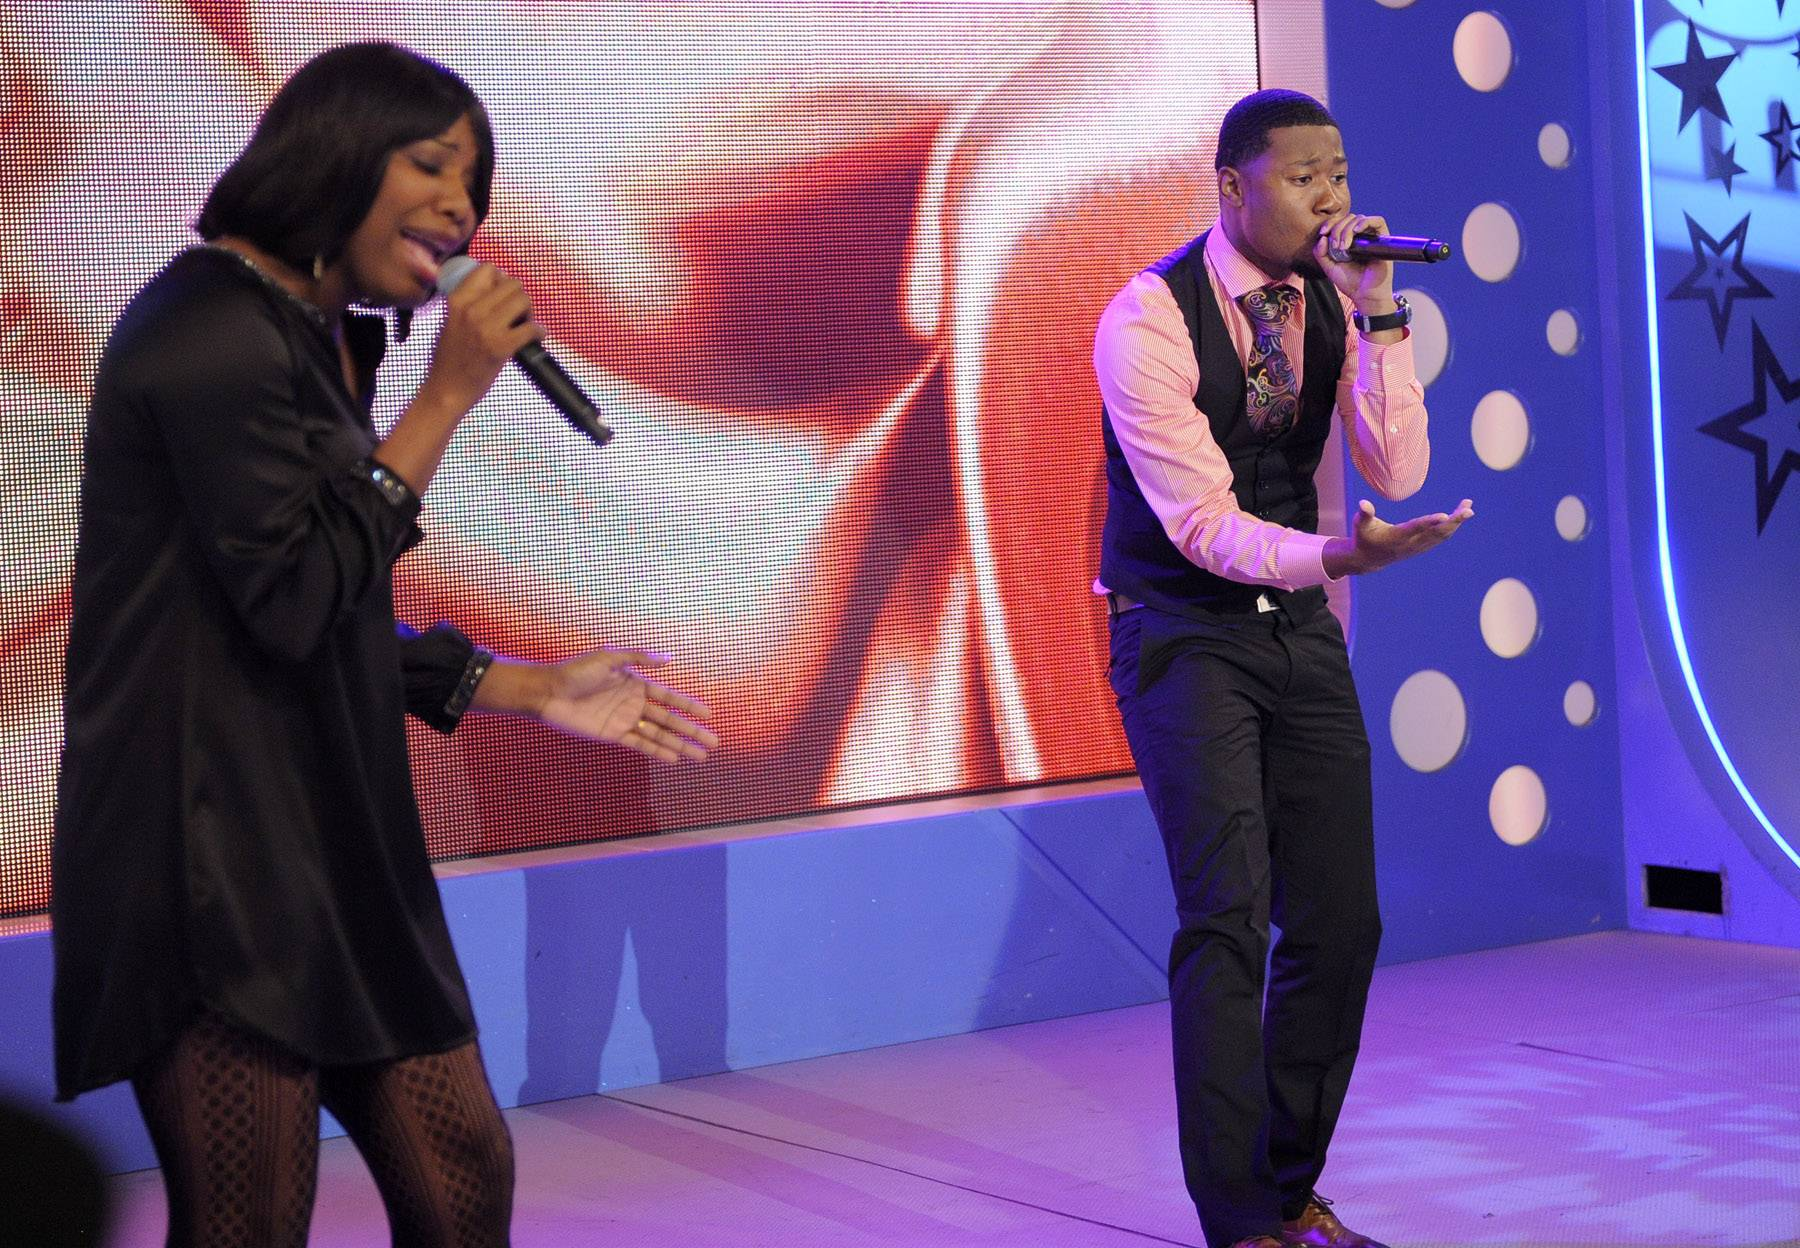 """Let them sing. - Davone Ministry & Harmony perform """"Fly"""" at 106 & Park, May 16, 2012. (Photo: John Ricard / BET)"""